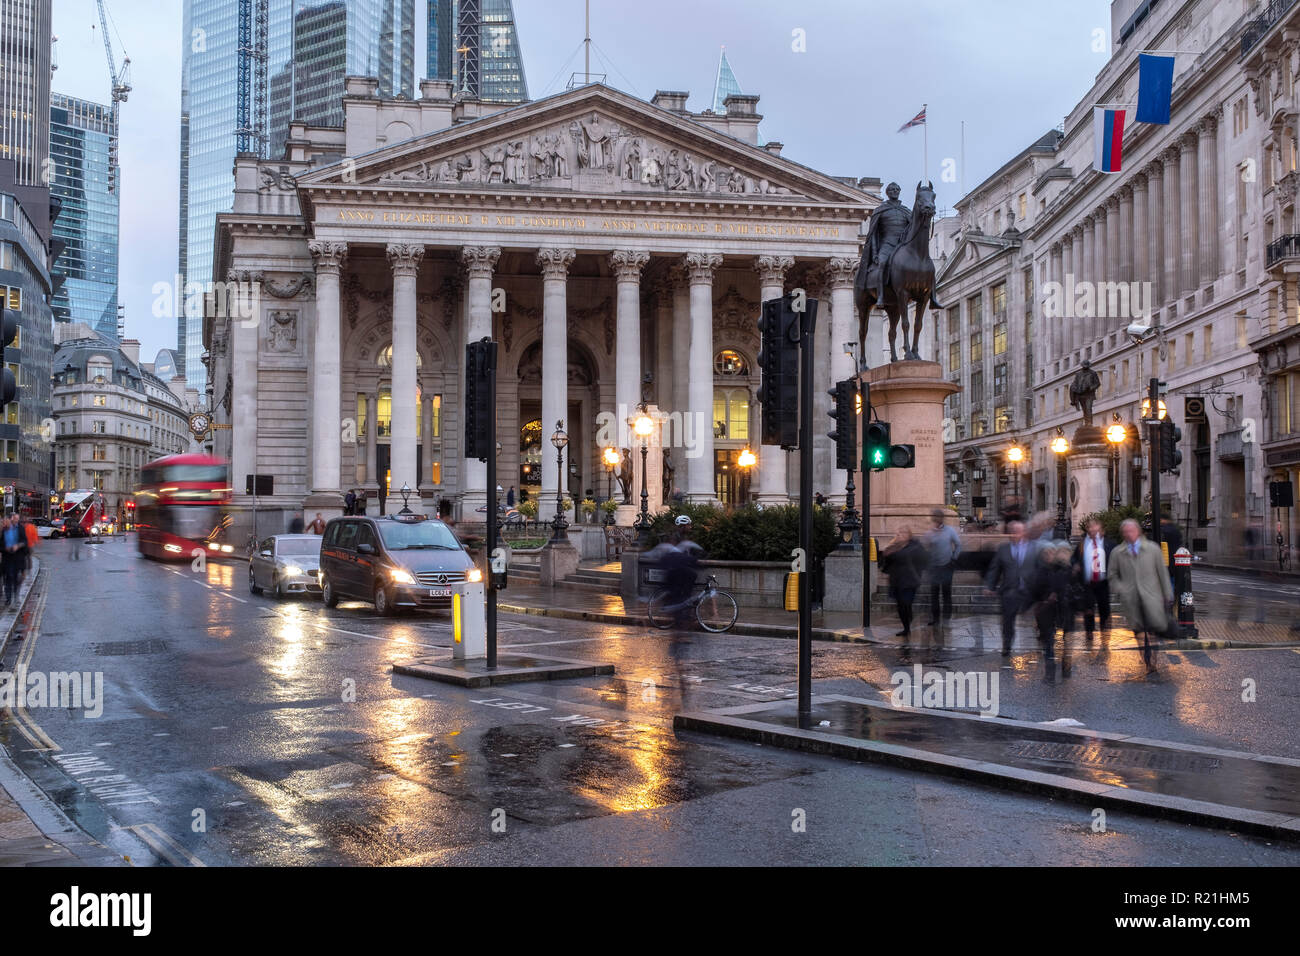 England,City of London - The Royal Exchange Building in the Financial district - Stock Image